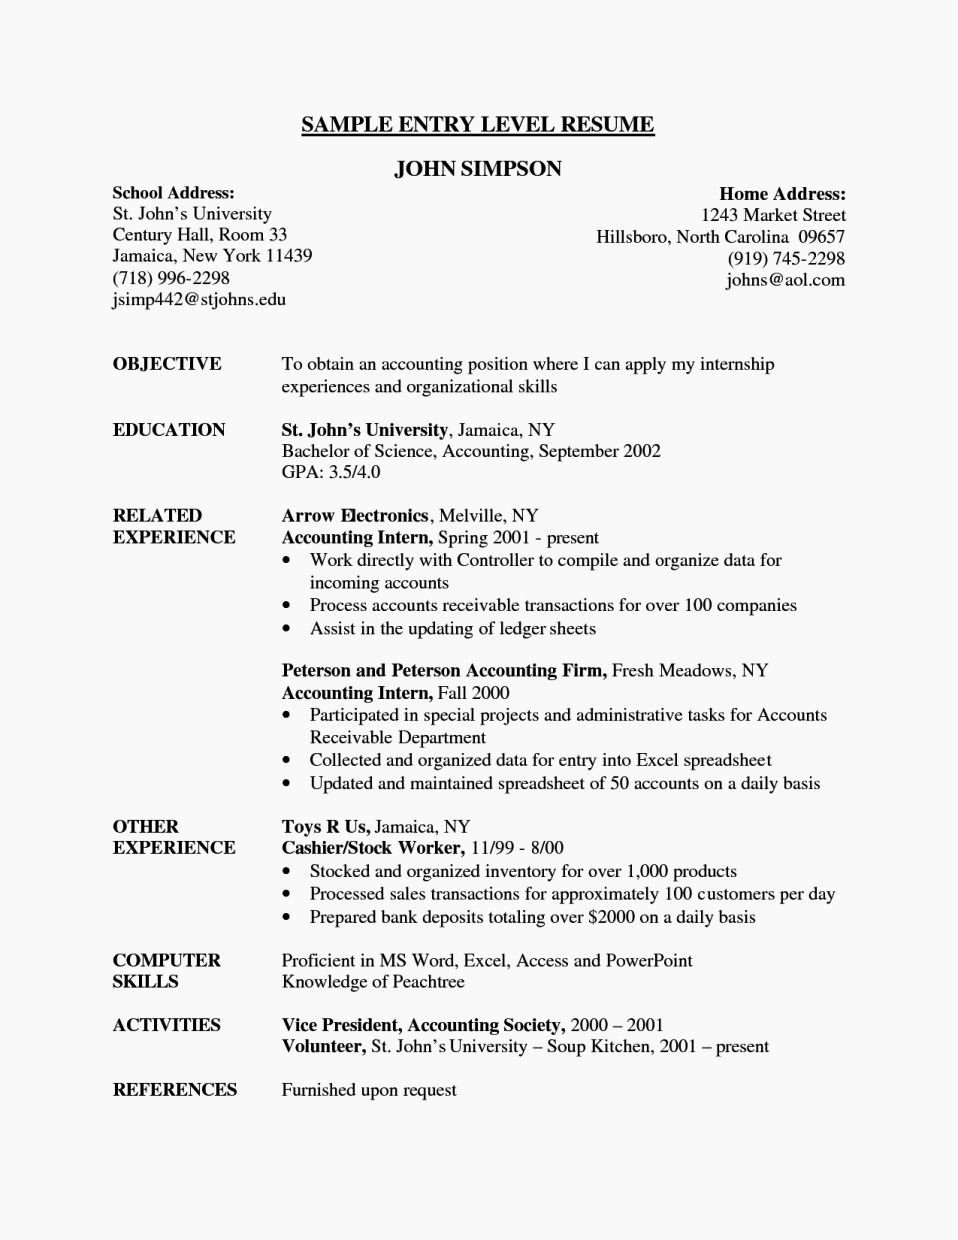 Cv format for Entry Level Job Resume Template